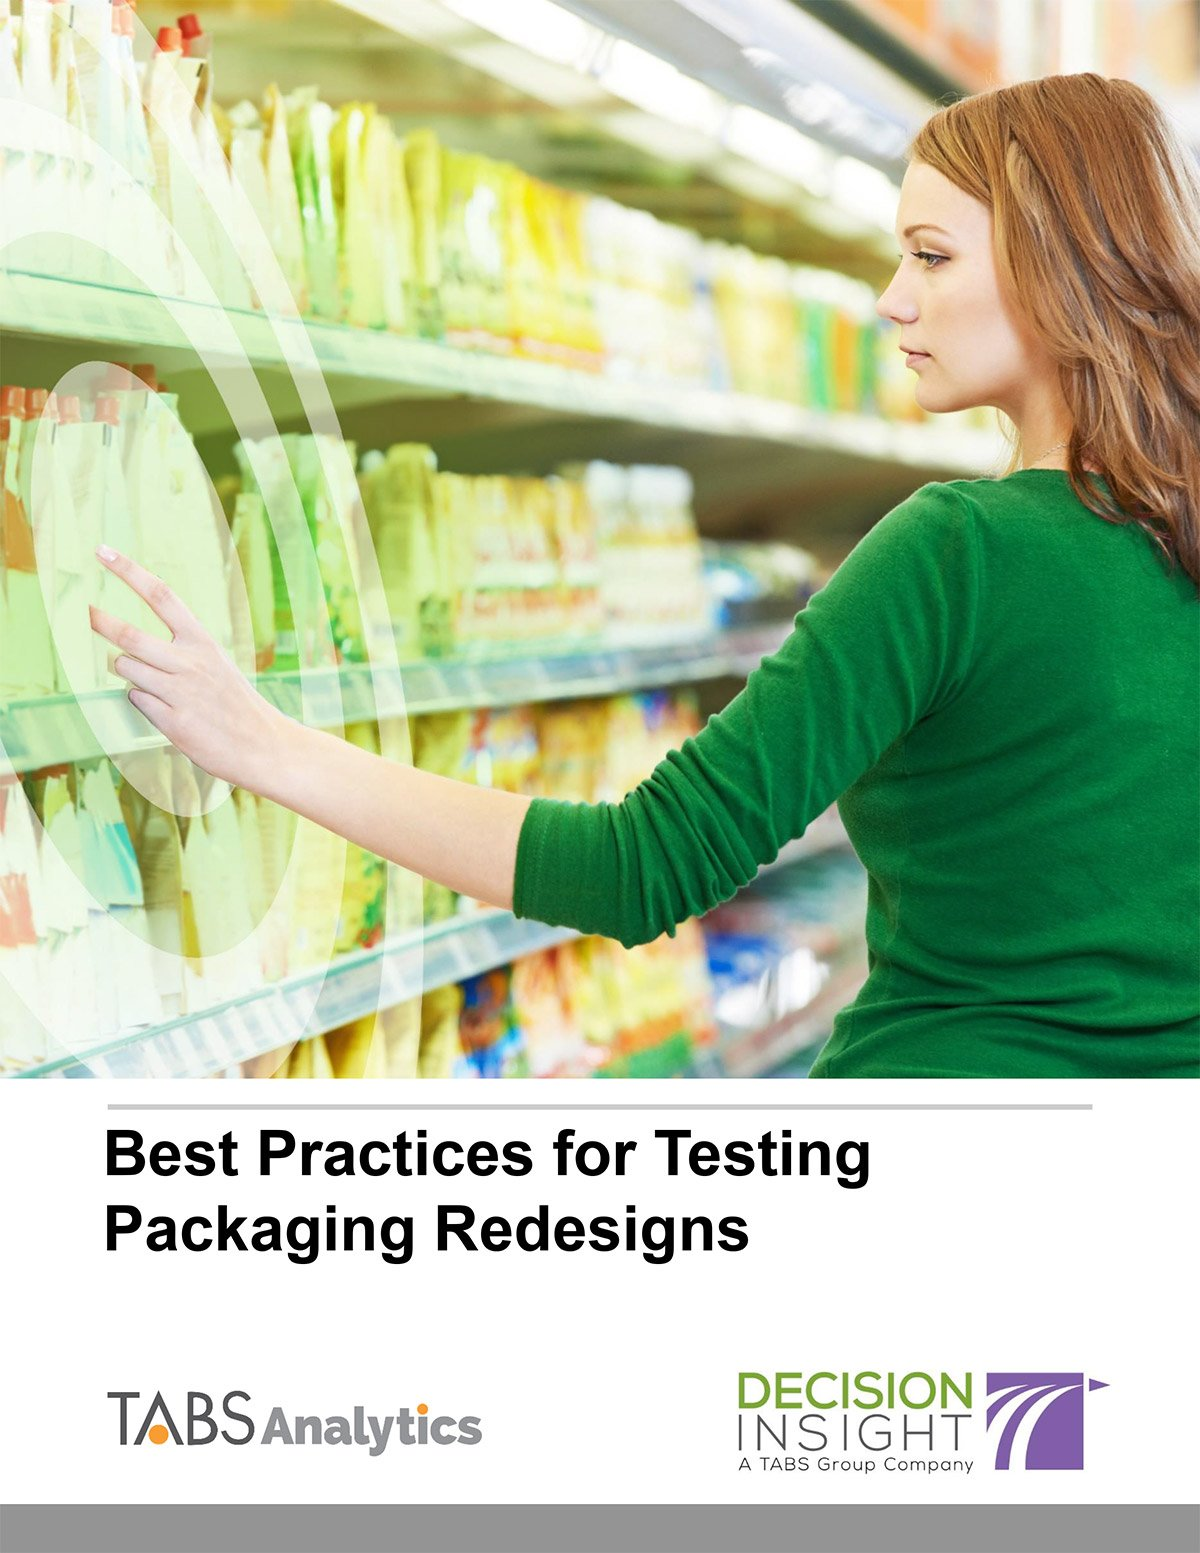 TABS-DI-Best-Practices-for-Testing-Packaging-Redesigns-cover